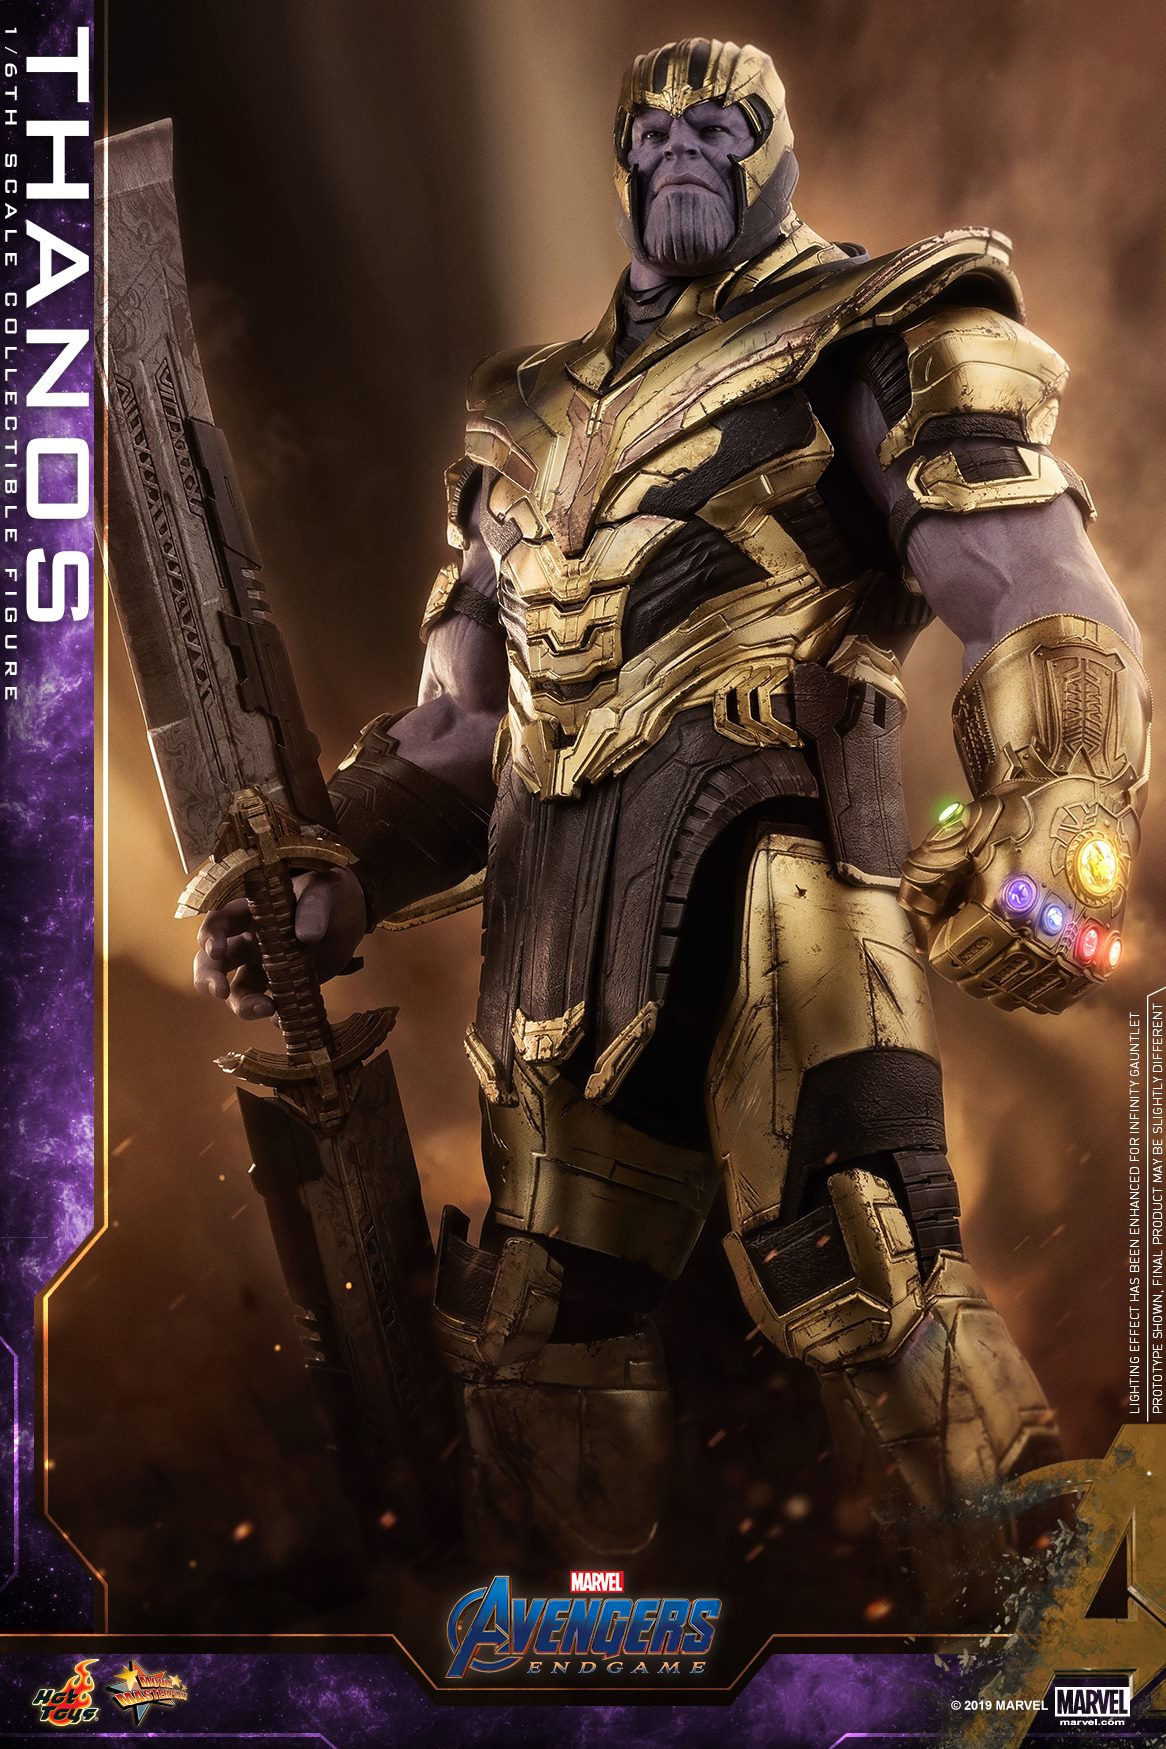 Pre-Order Hot Toys Marvel Avengers End Game Thanos Figure